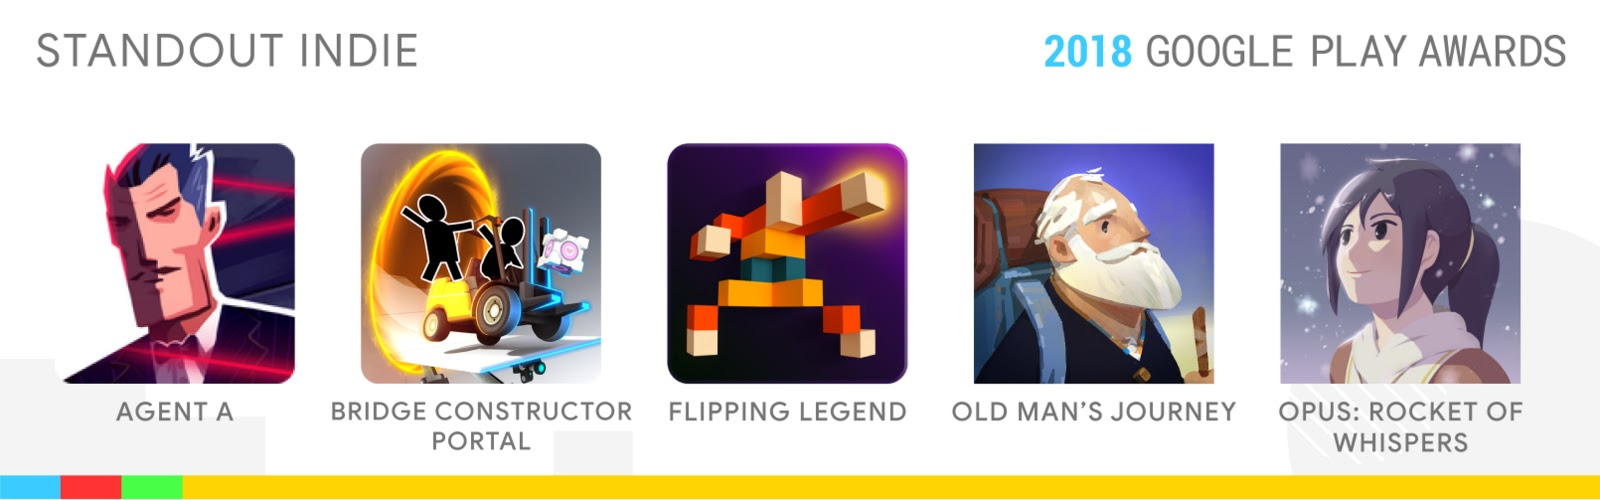 Standout Indie: Agent A, Bridge Constructor Portal, Flipping Legend, Old Man's Journey, OPUS: Rocket of Whispers